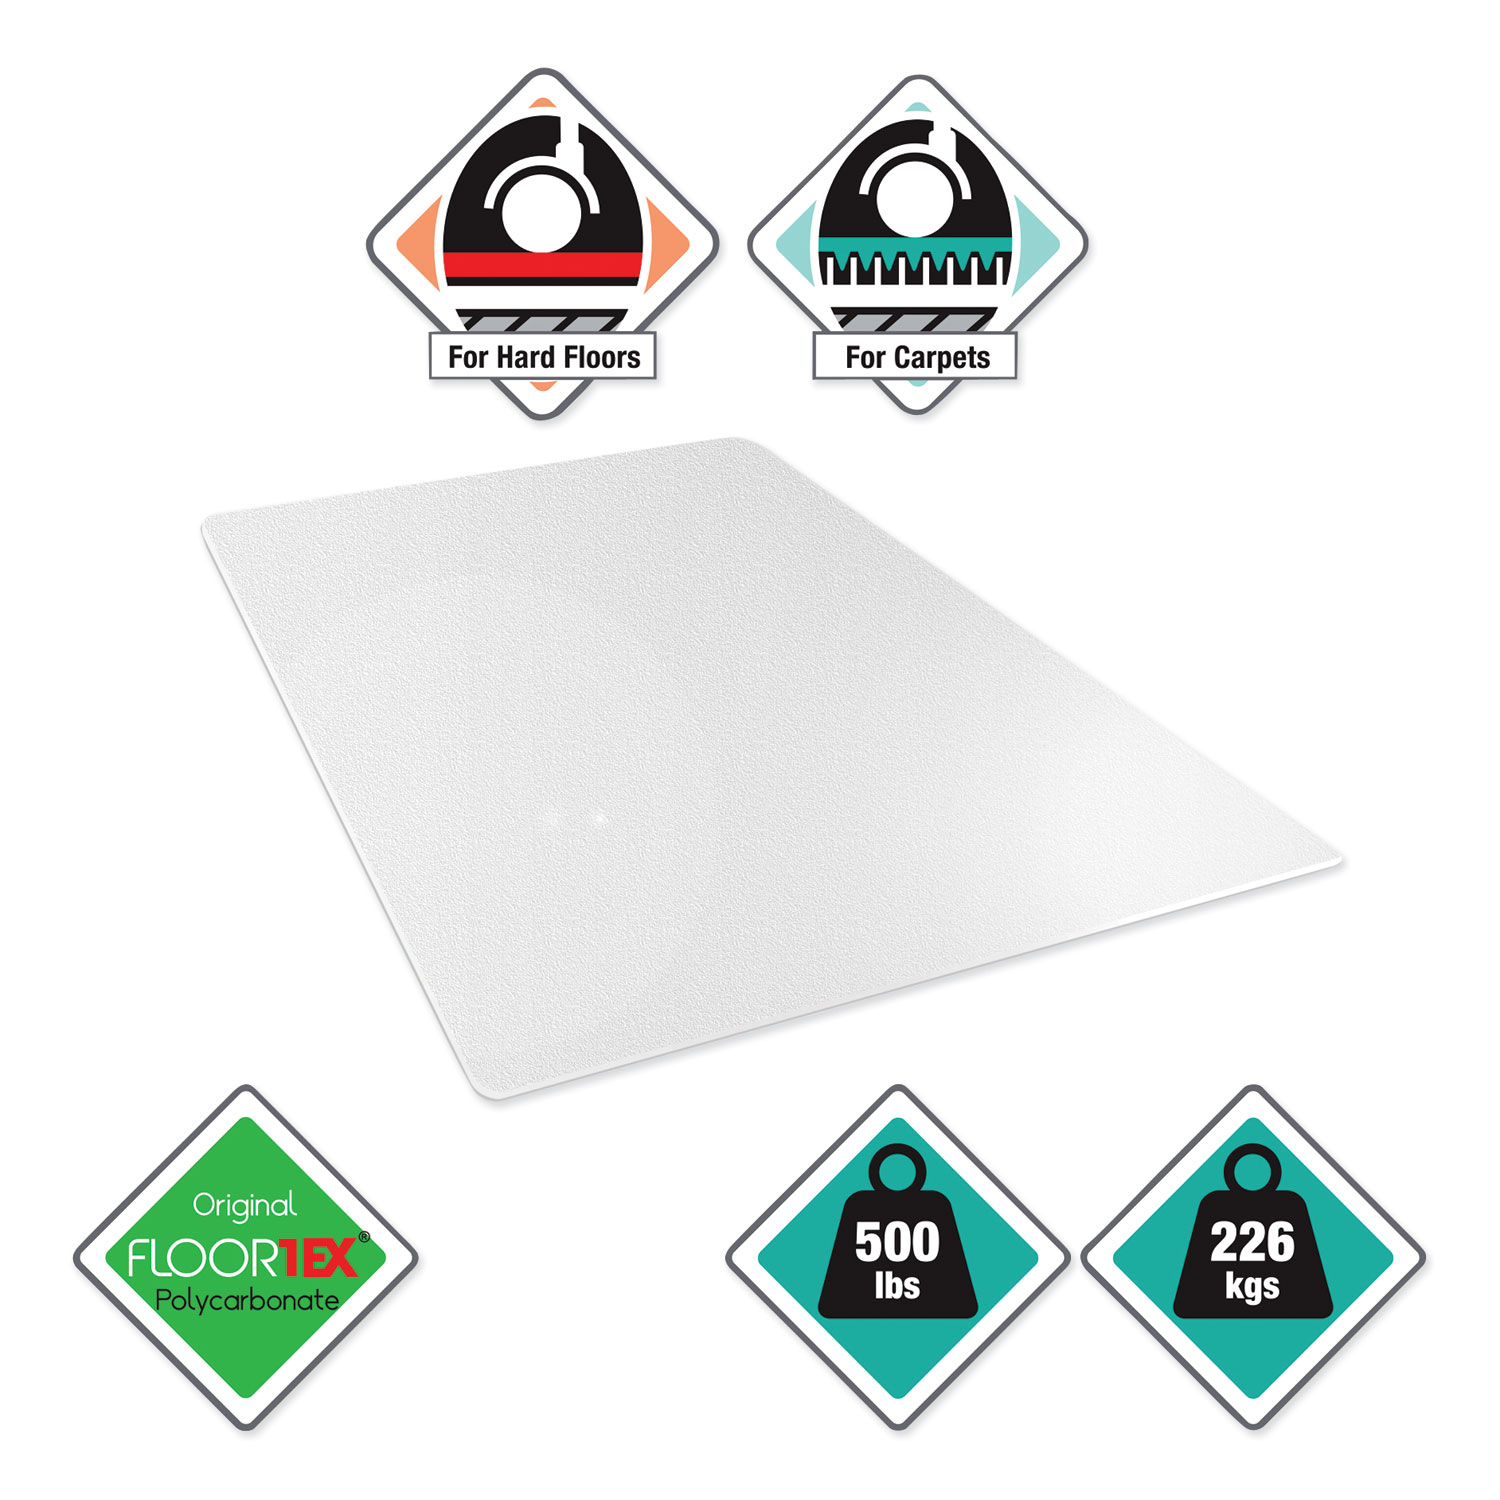 Cleartex Megamat Heavy Duty Polycarbonate Mat For Hard Floor All Carpet 46 X 53 Clear United Imaging